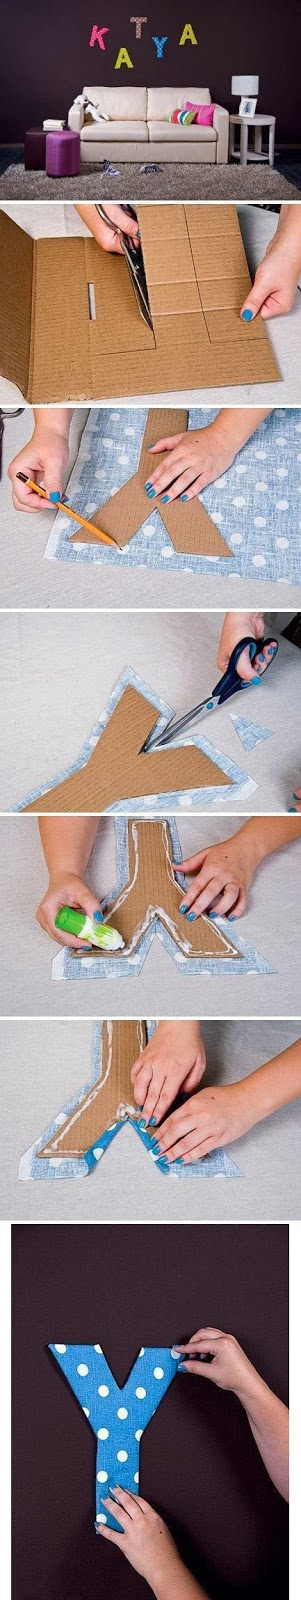 Gifts that say wow fun crafts and gift ideas 8 cool for How to cover cardboard letters with fabric